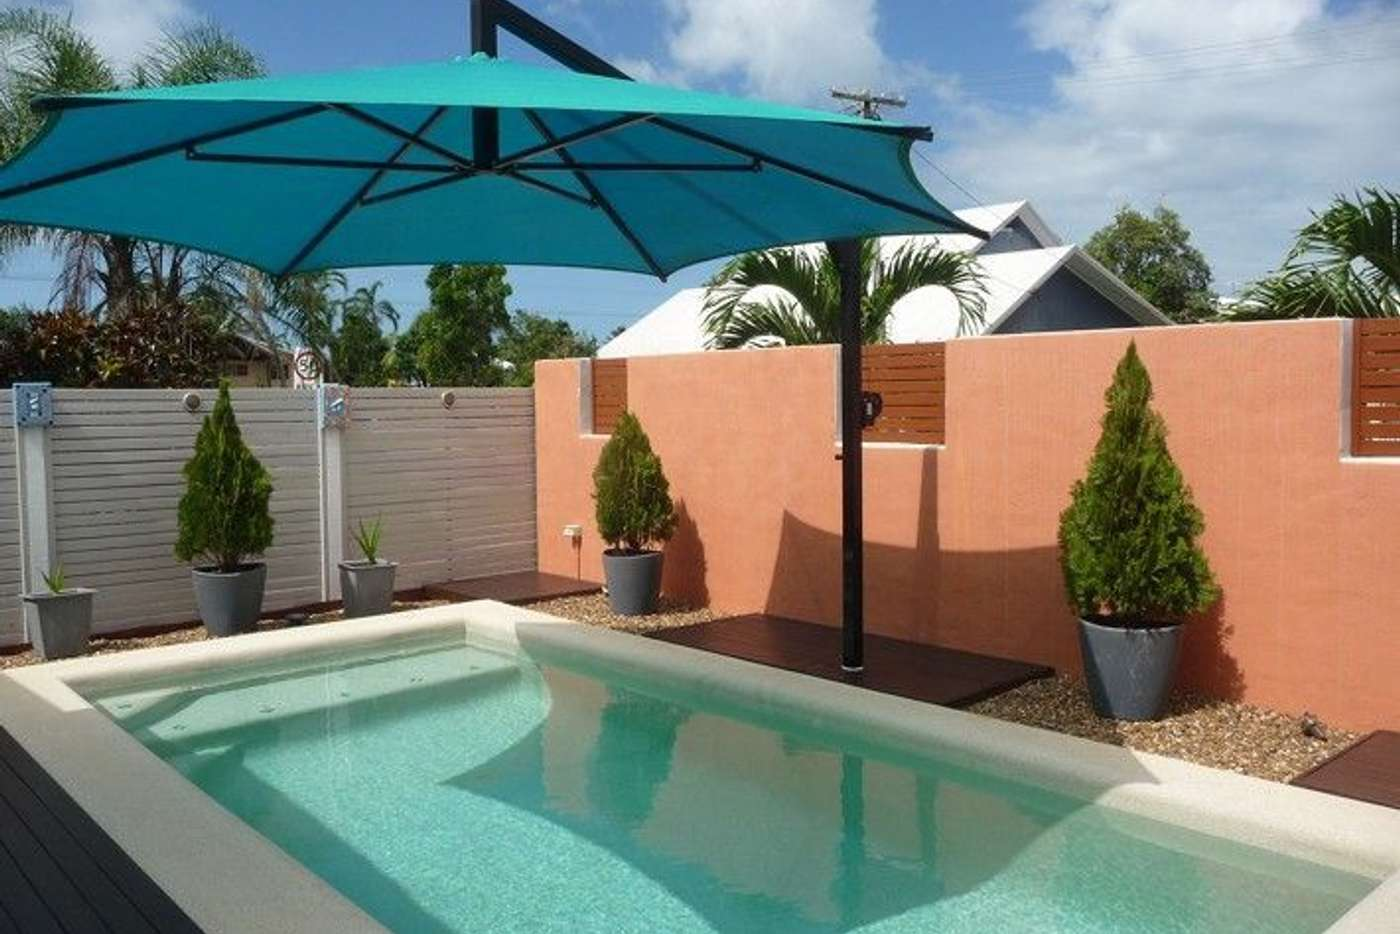 Main view of Homely house listing, 6 Hilliar St, Wongaling Beach QLD 4852